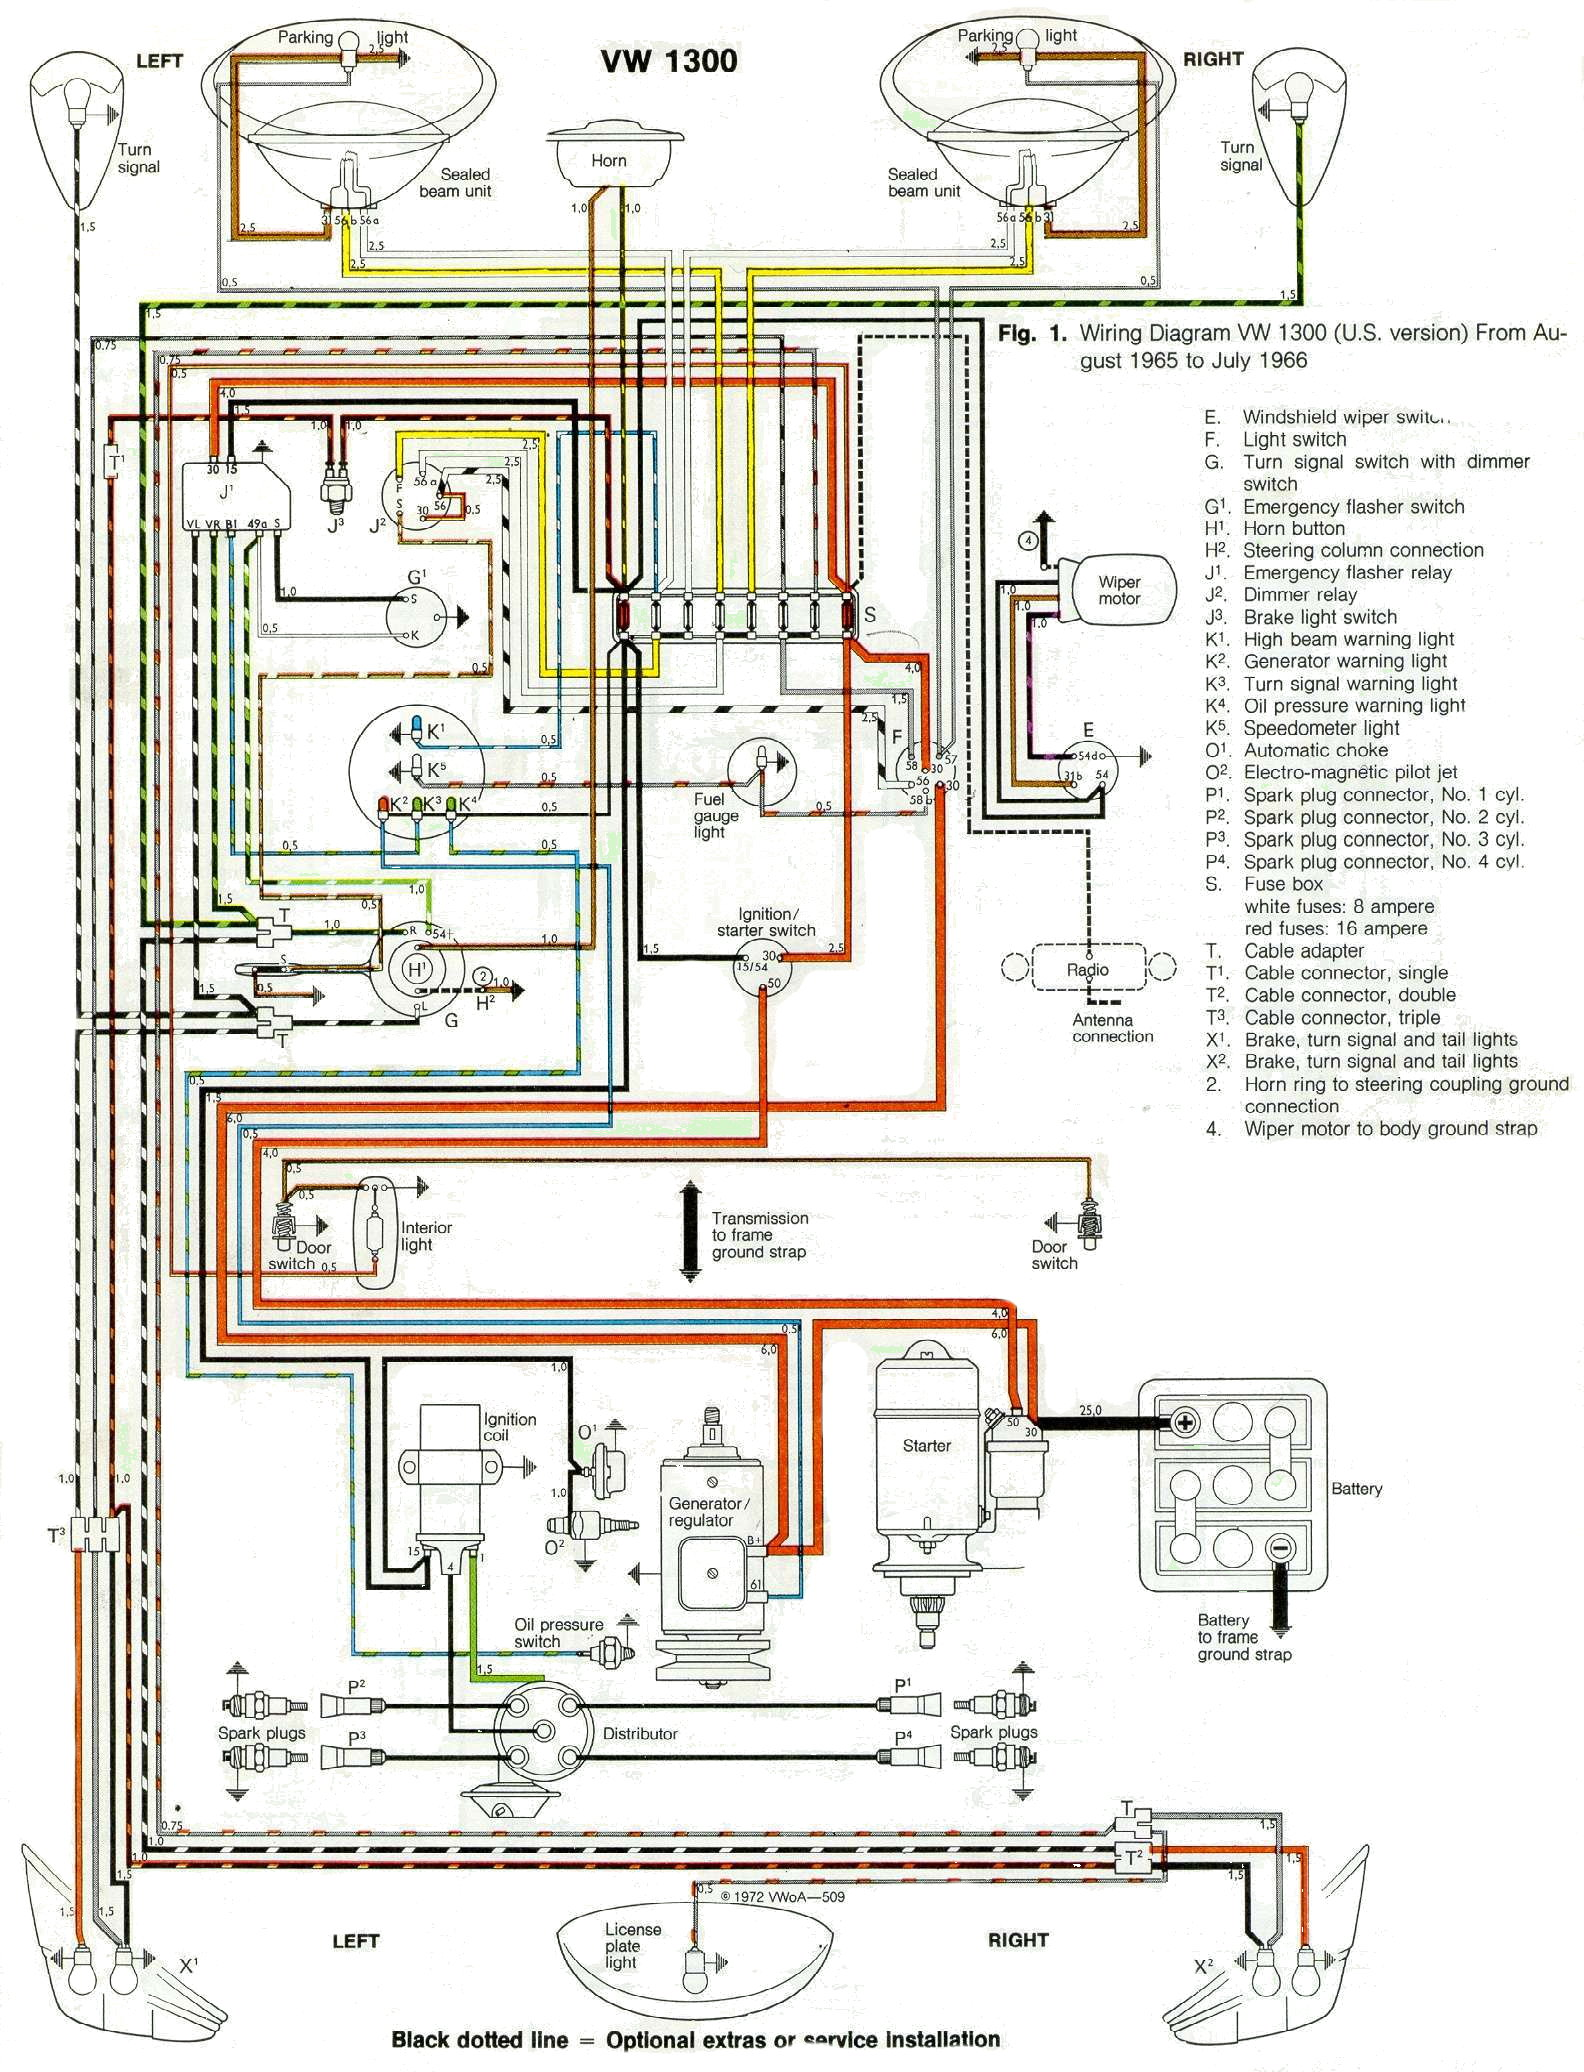 1966 Wiring 67 vw bus wiring harness 71 vw wiring harness \u2022 wiring diagrams Wiring Harness Diagram at creativeand.co